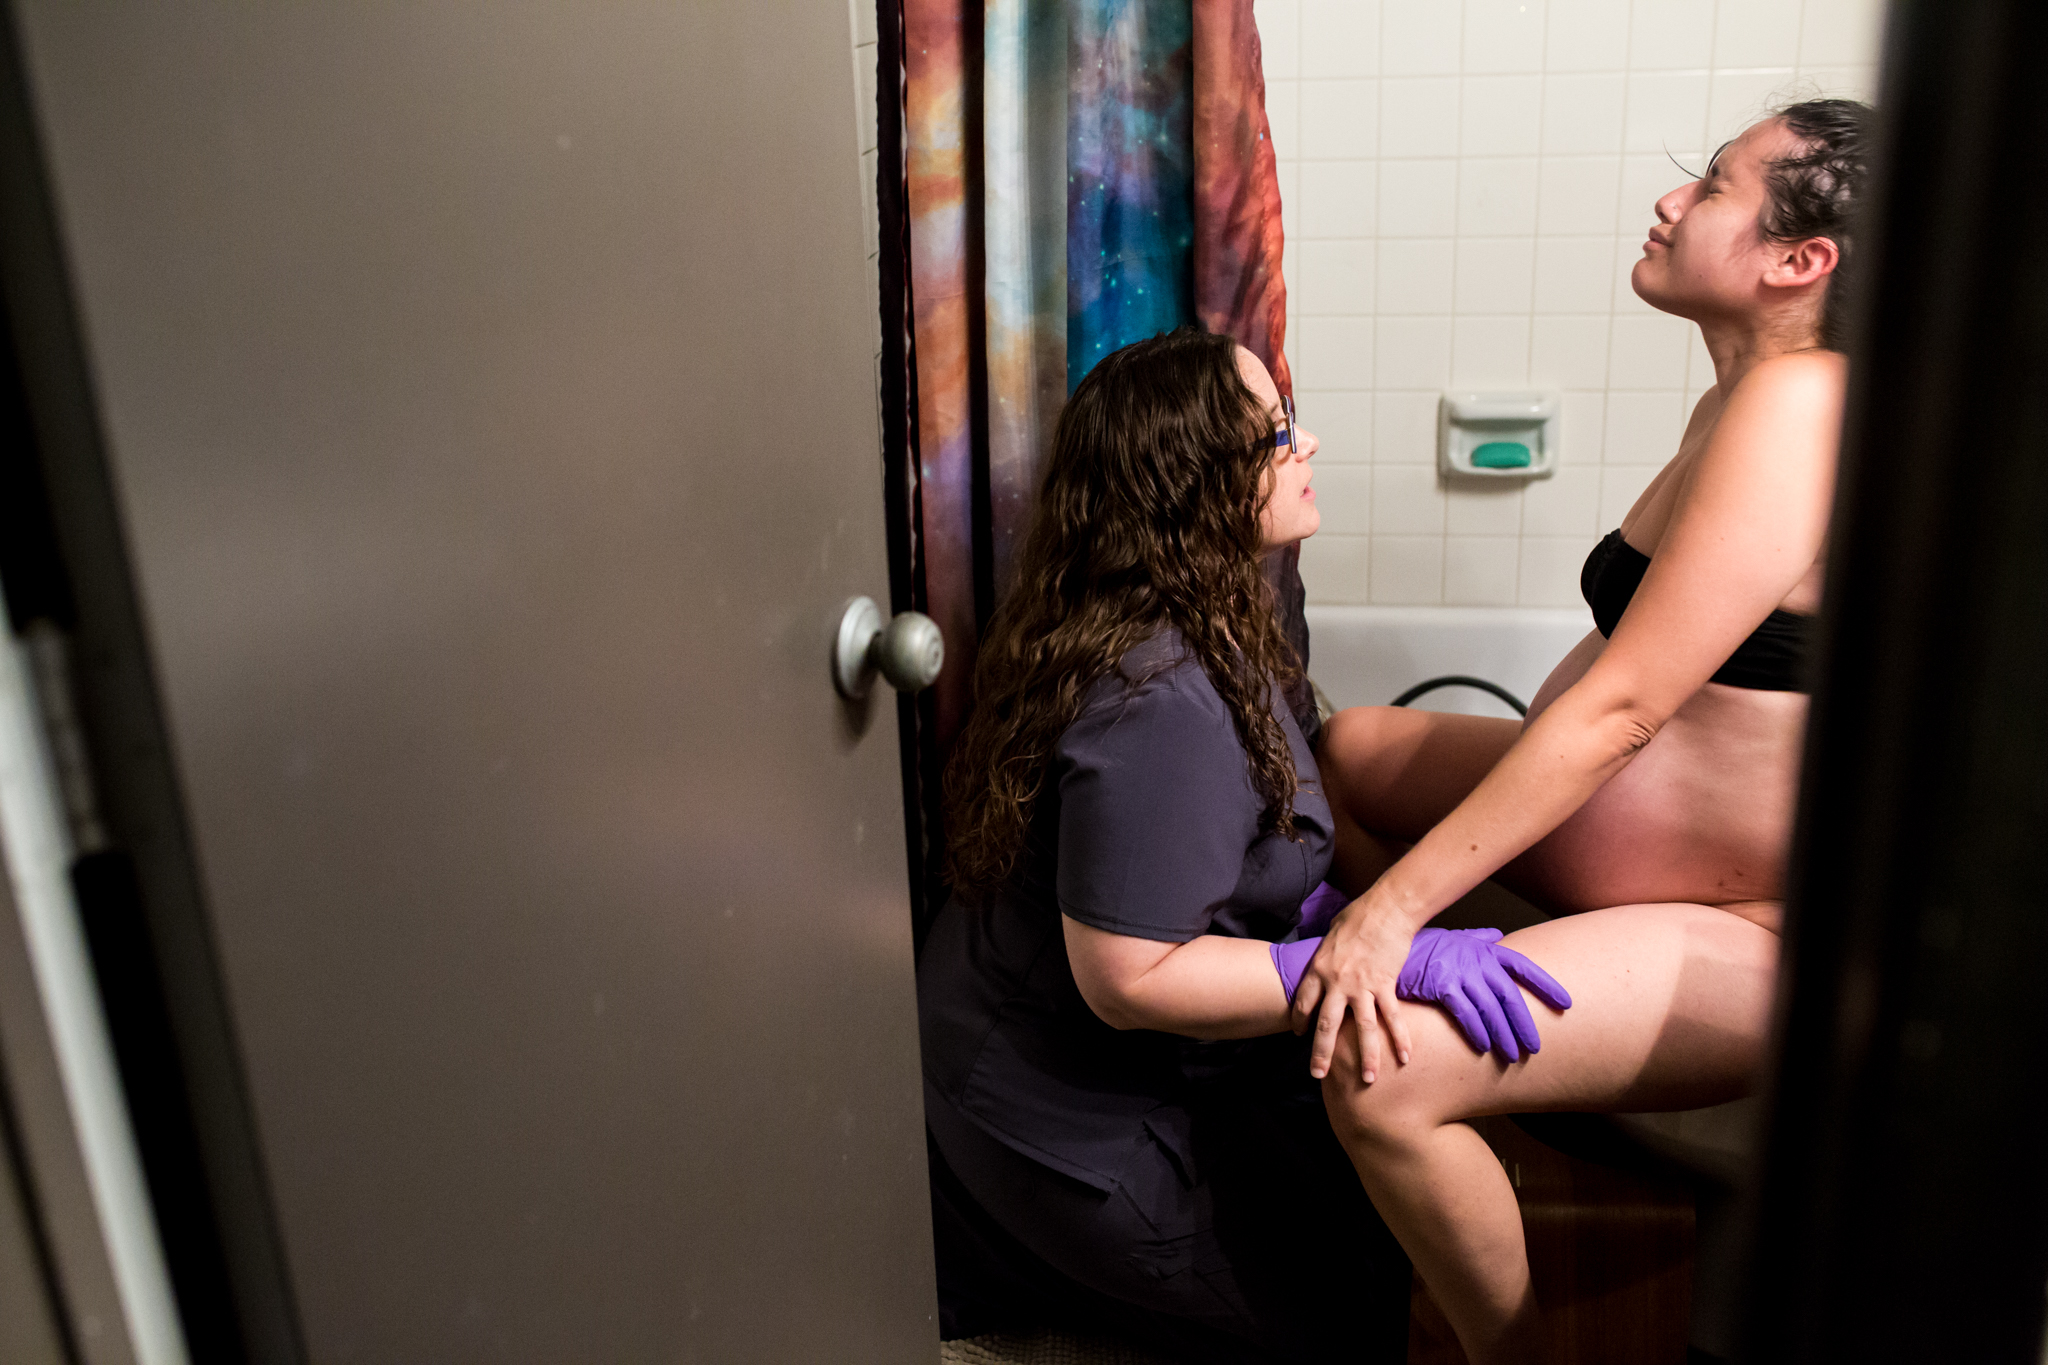 Birth Photographer Lawren Rose Photography captures a moment between a laboring mom and her midwife in the bathroom on the toilet as she powers through her final contractions in carrollton texas